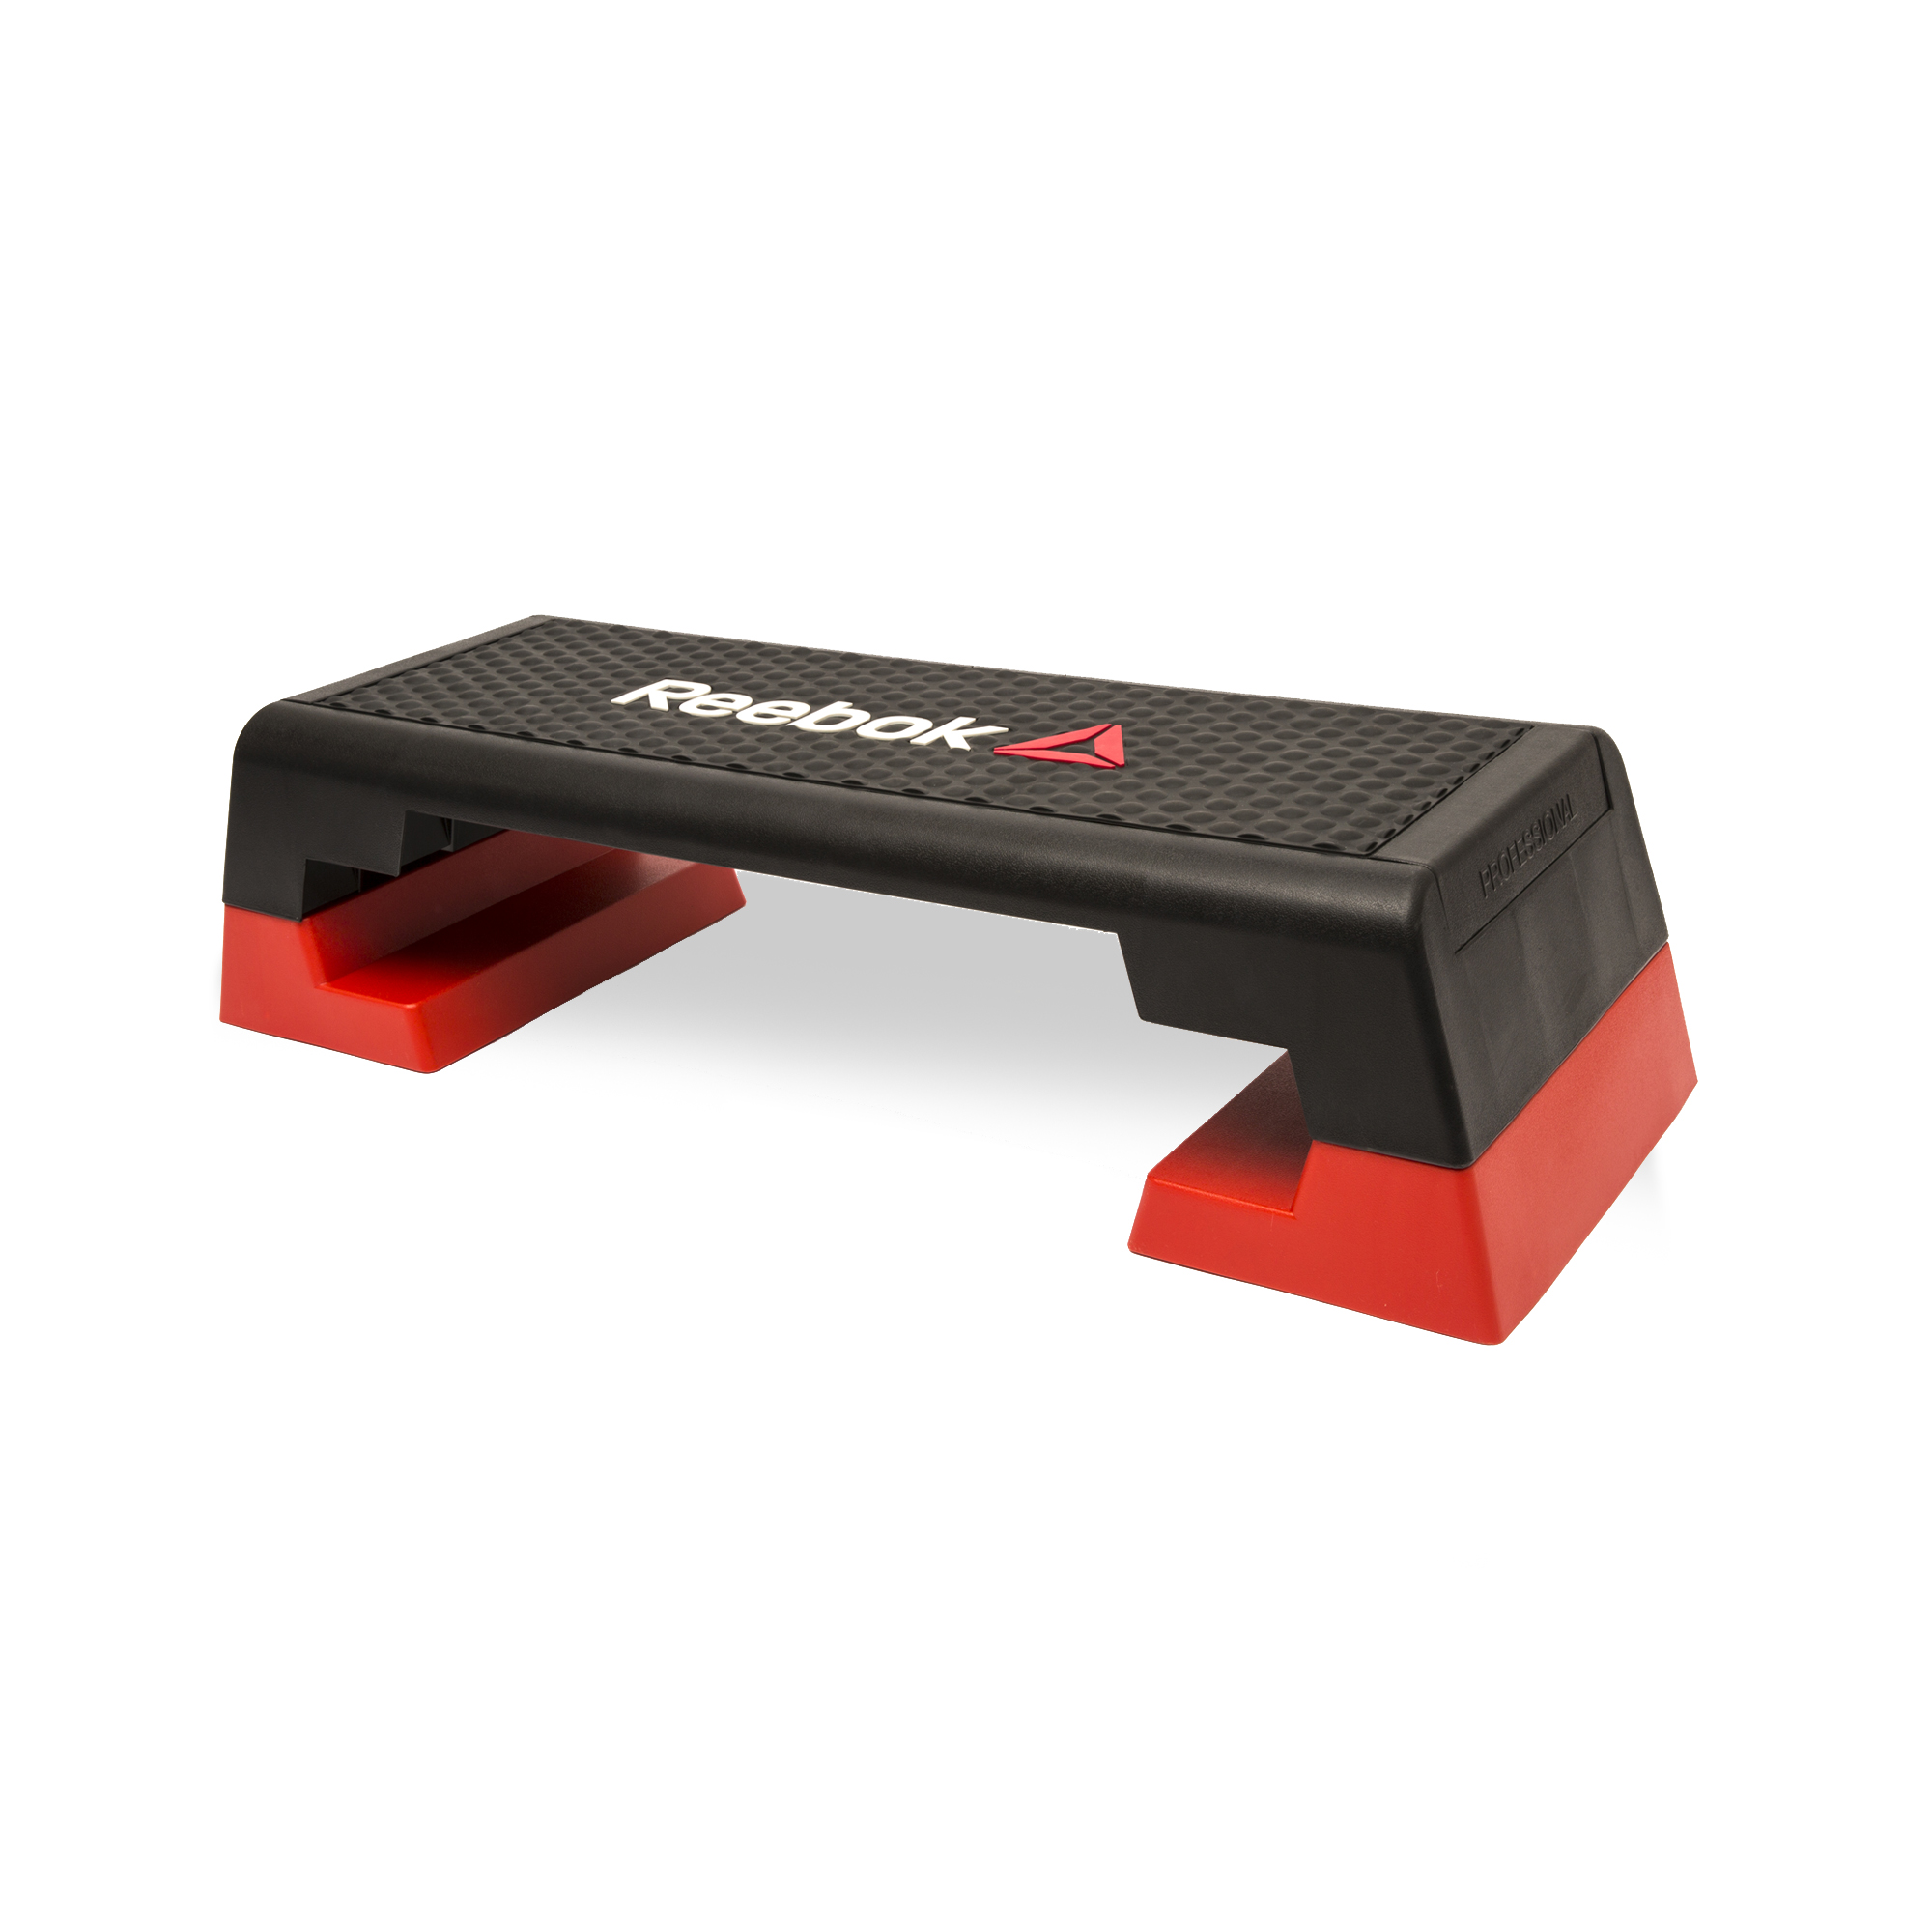 Reebok Step Professional Buy Online At Physical Company